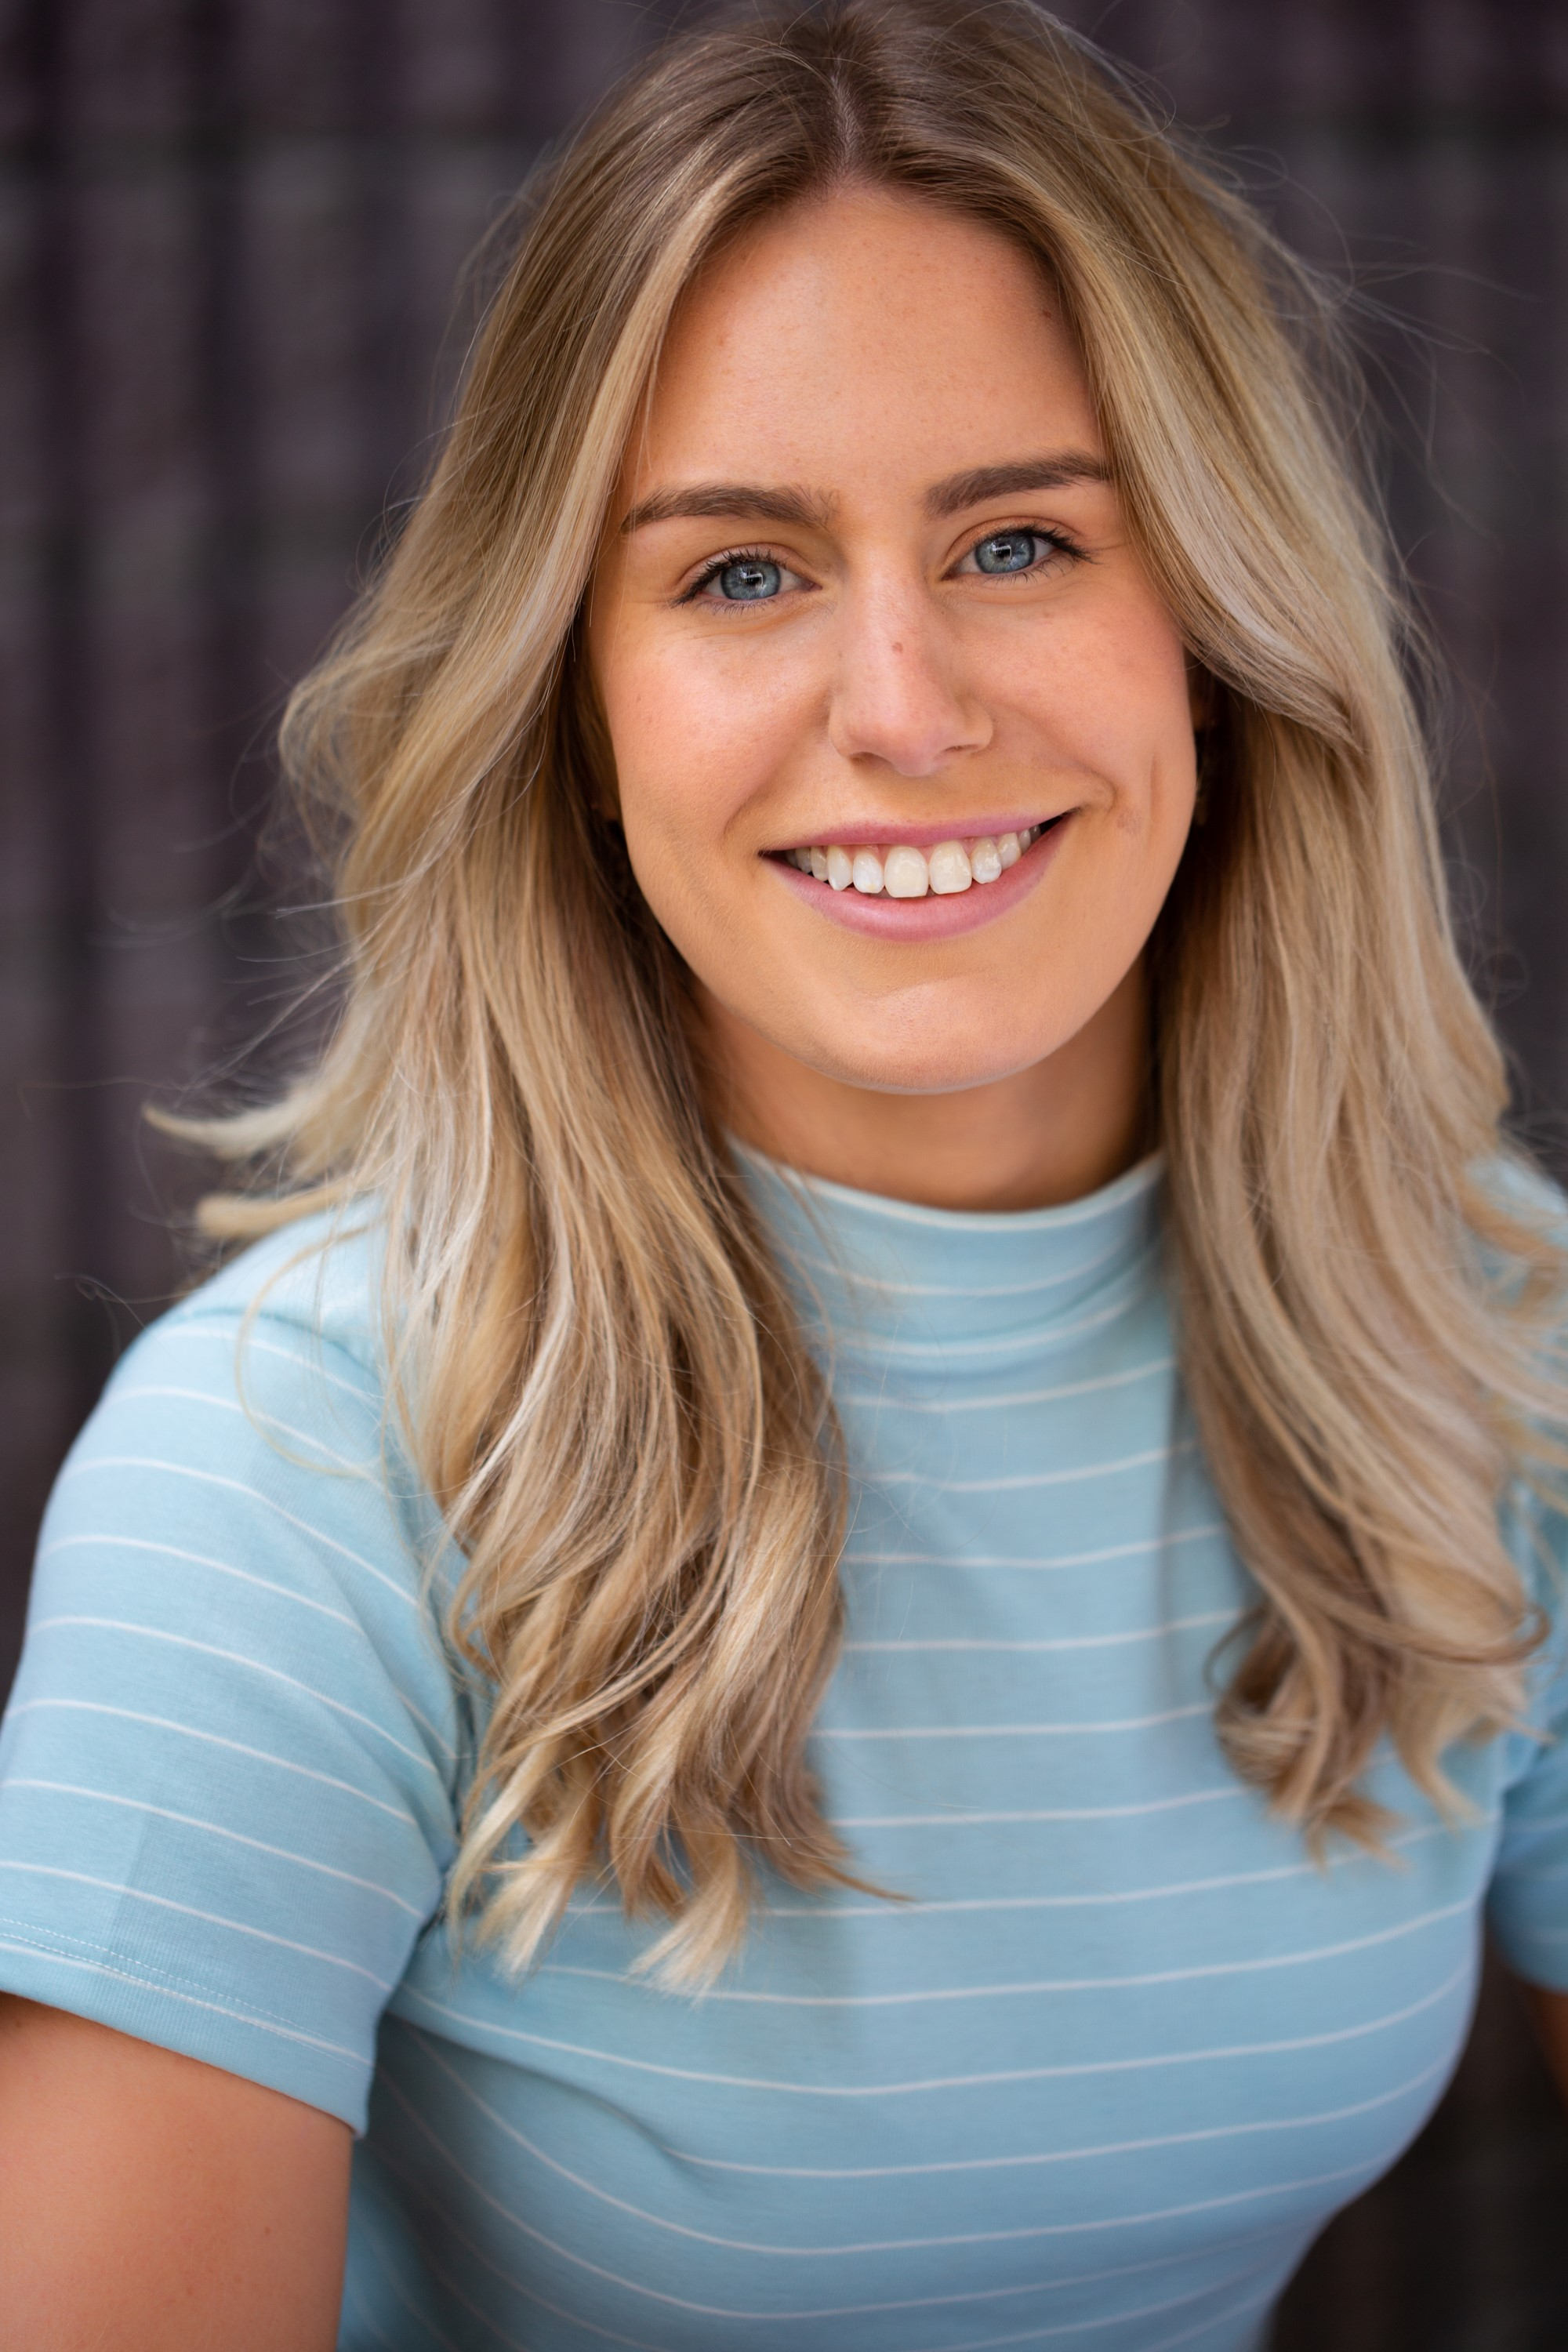 STACEY THOMSETT | Melbourne